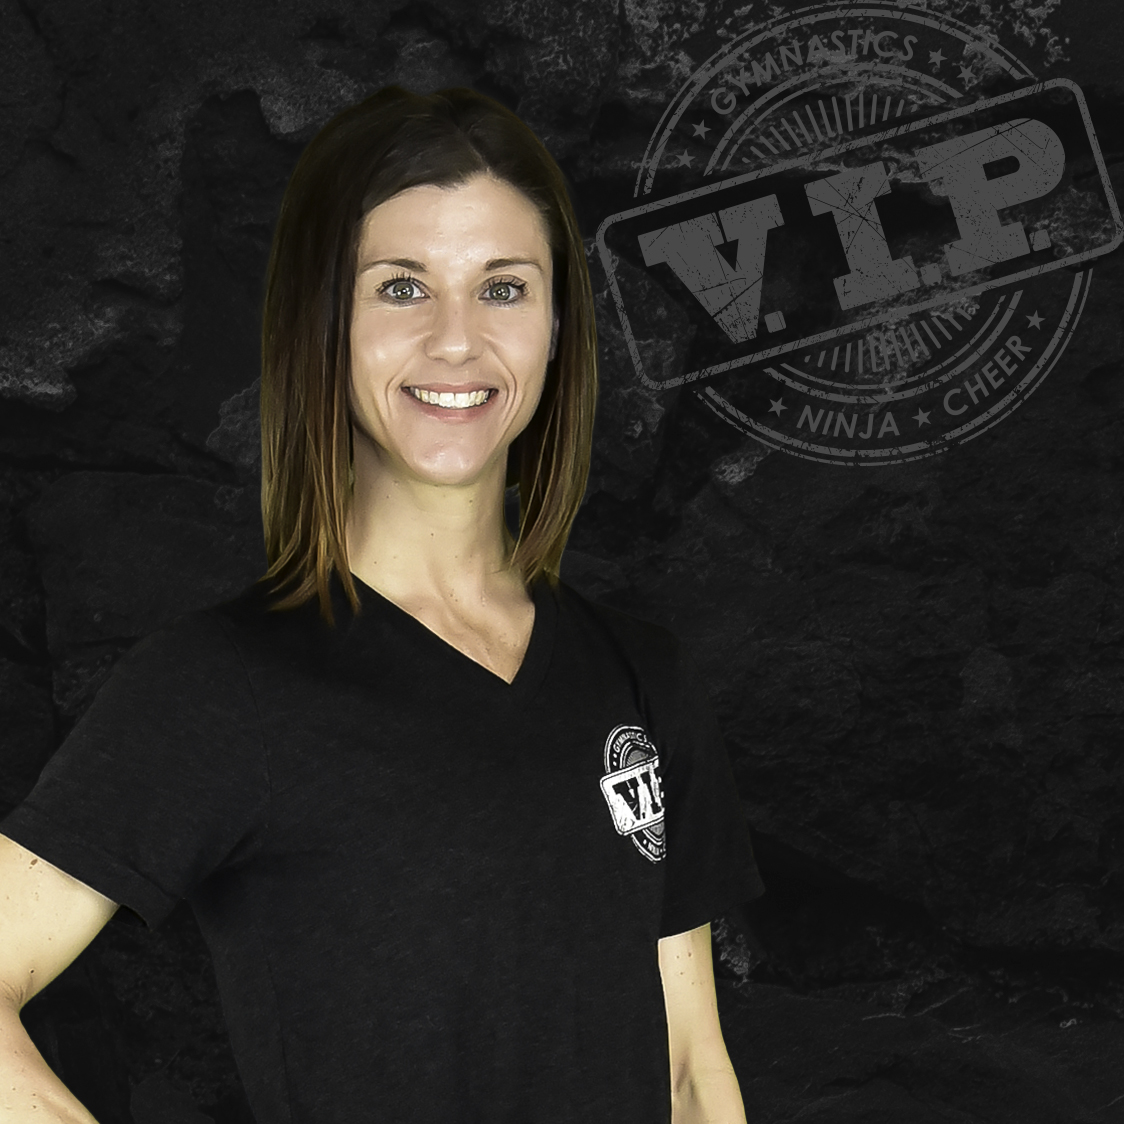 Kellie Preschool/Hall Of Famers Coach    Qualifications:    -  Competed in gymnastics @ a level 10  - Coached gymnastics since highschool  - Bachelors in Exercise Science from the University of Nebraska-Omaha   Fun Fact:   Mrs. Kellie can still cast to handstand on bars.   Larger Purpose 4 V.I.P.: